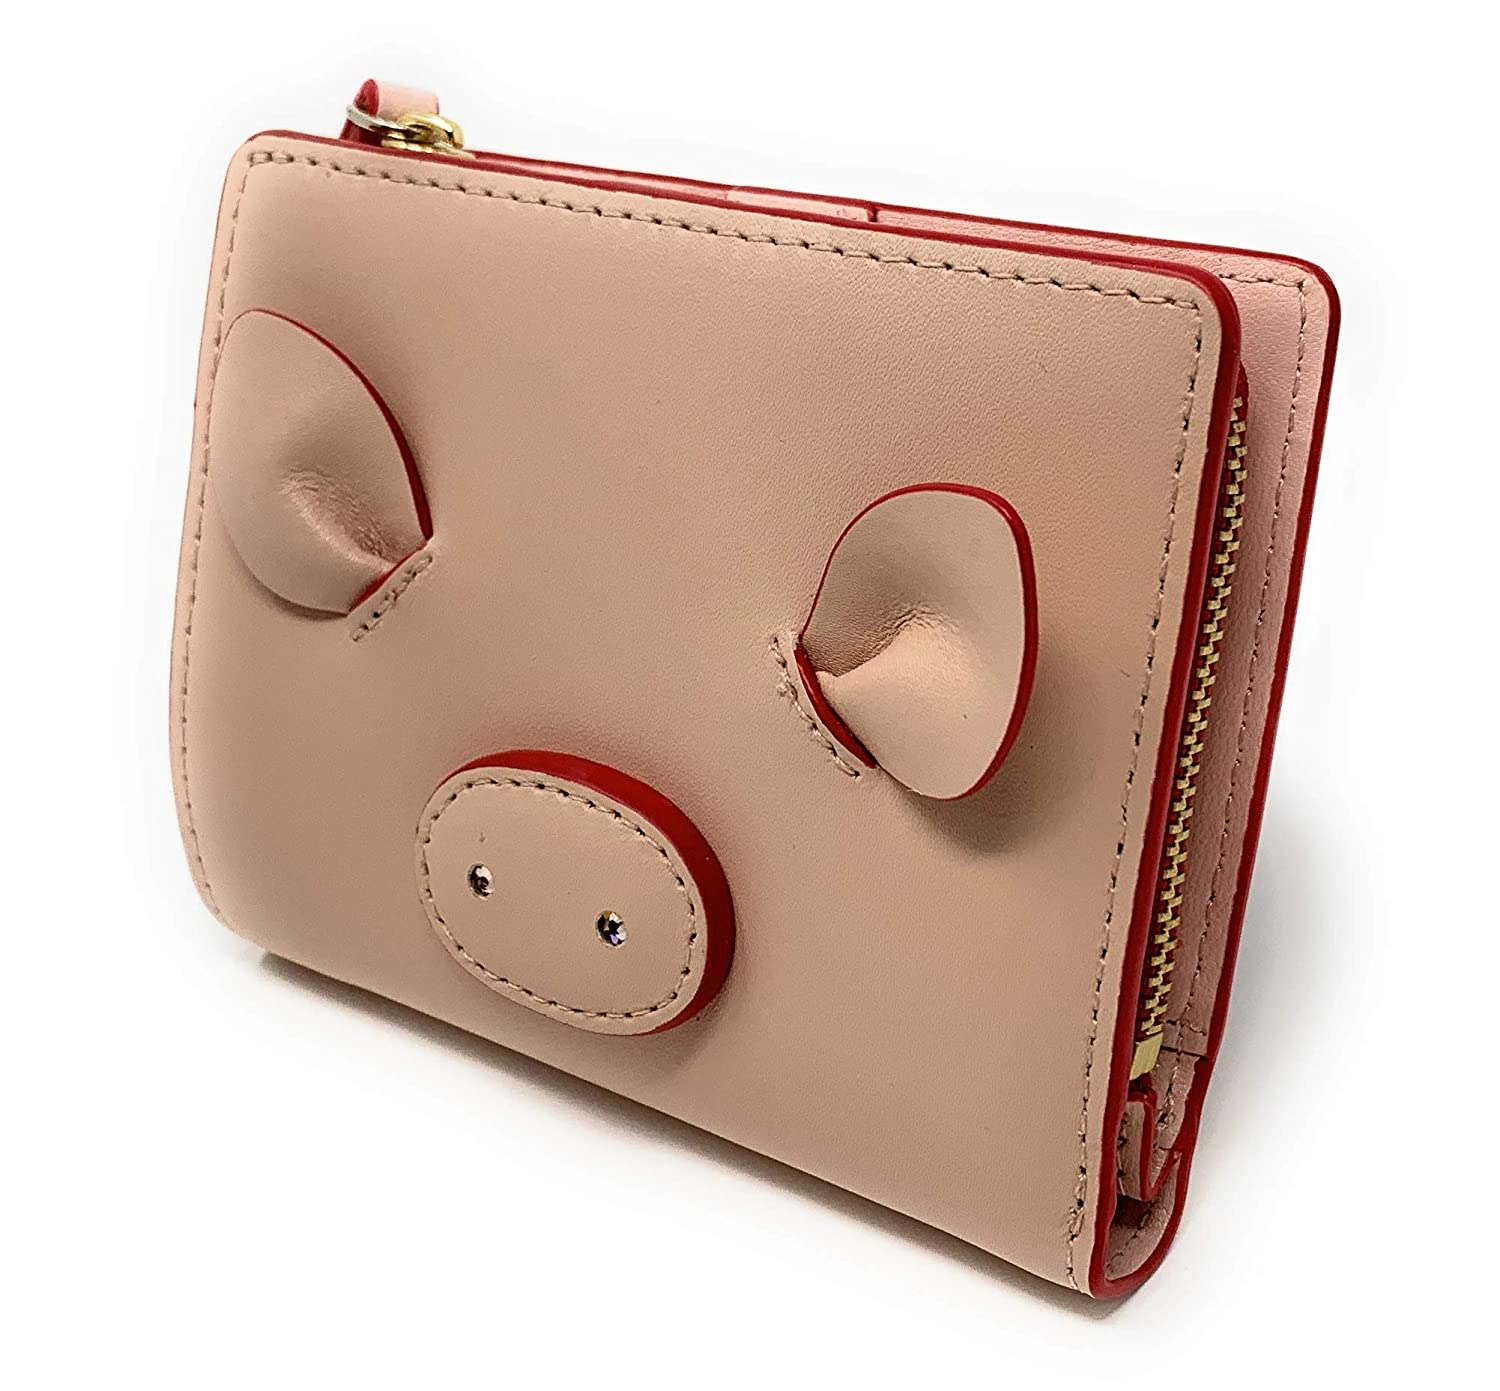 69cb4eaf87e Kate Spade Year of the Pig Small Shawn Warm Vellum Wallet